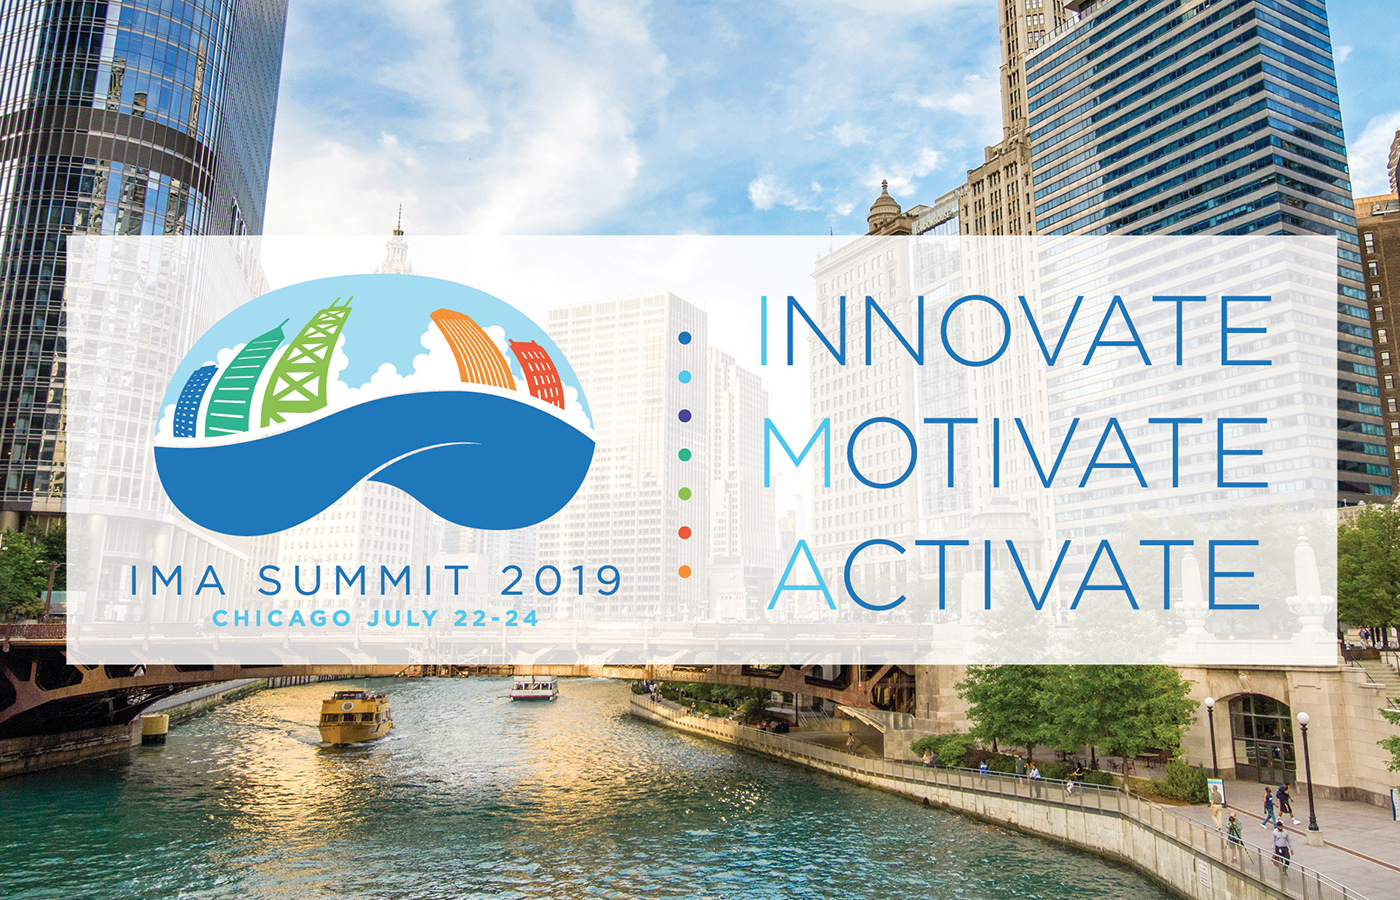 IMA Summit For The Incentive Industry